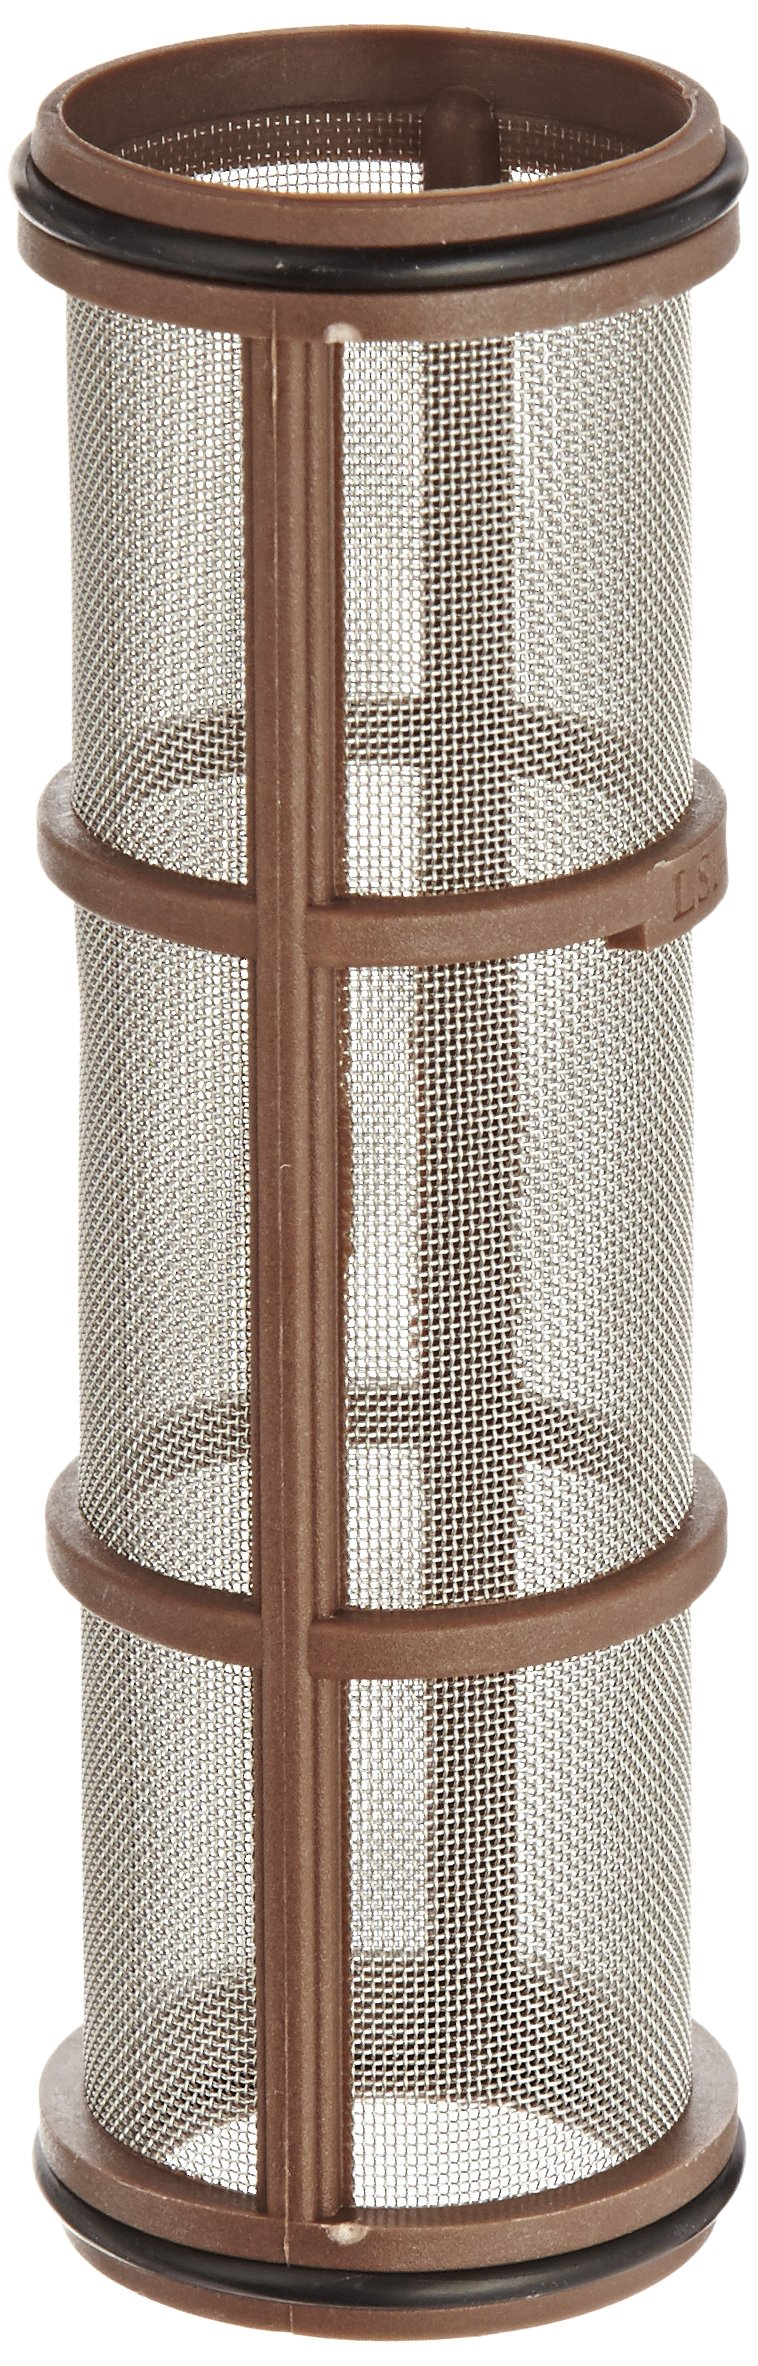 Banjo Stainless Steel 316 Screen for Y Strainer, 40 Mesh, 1 - 1 1/4''